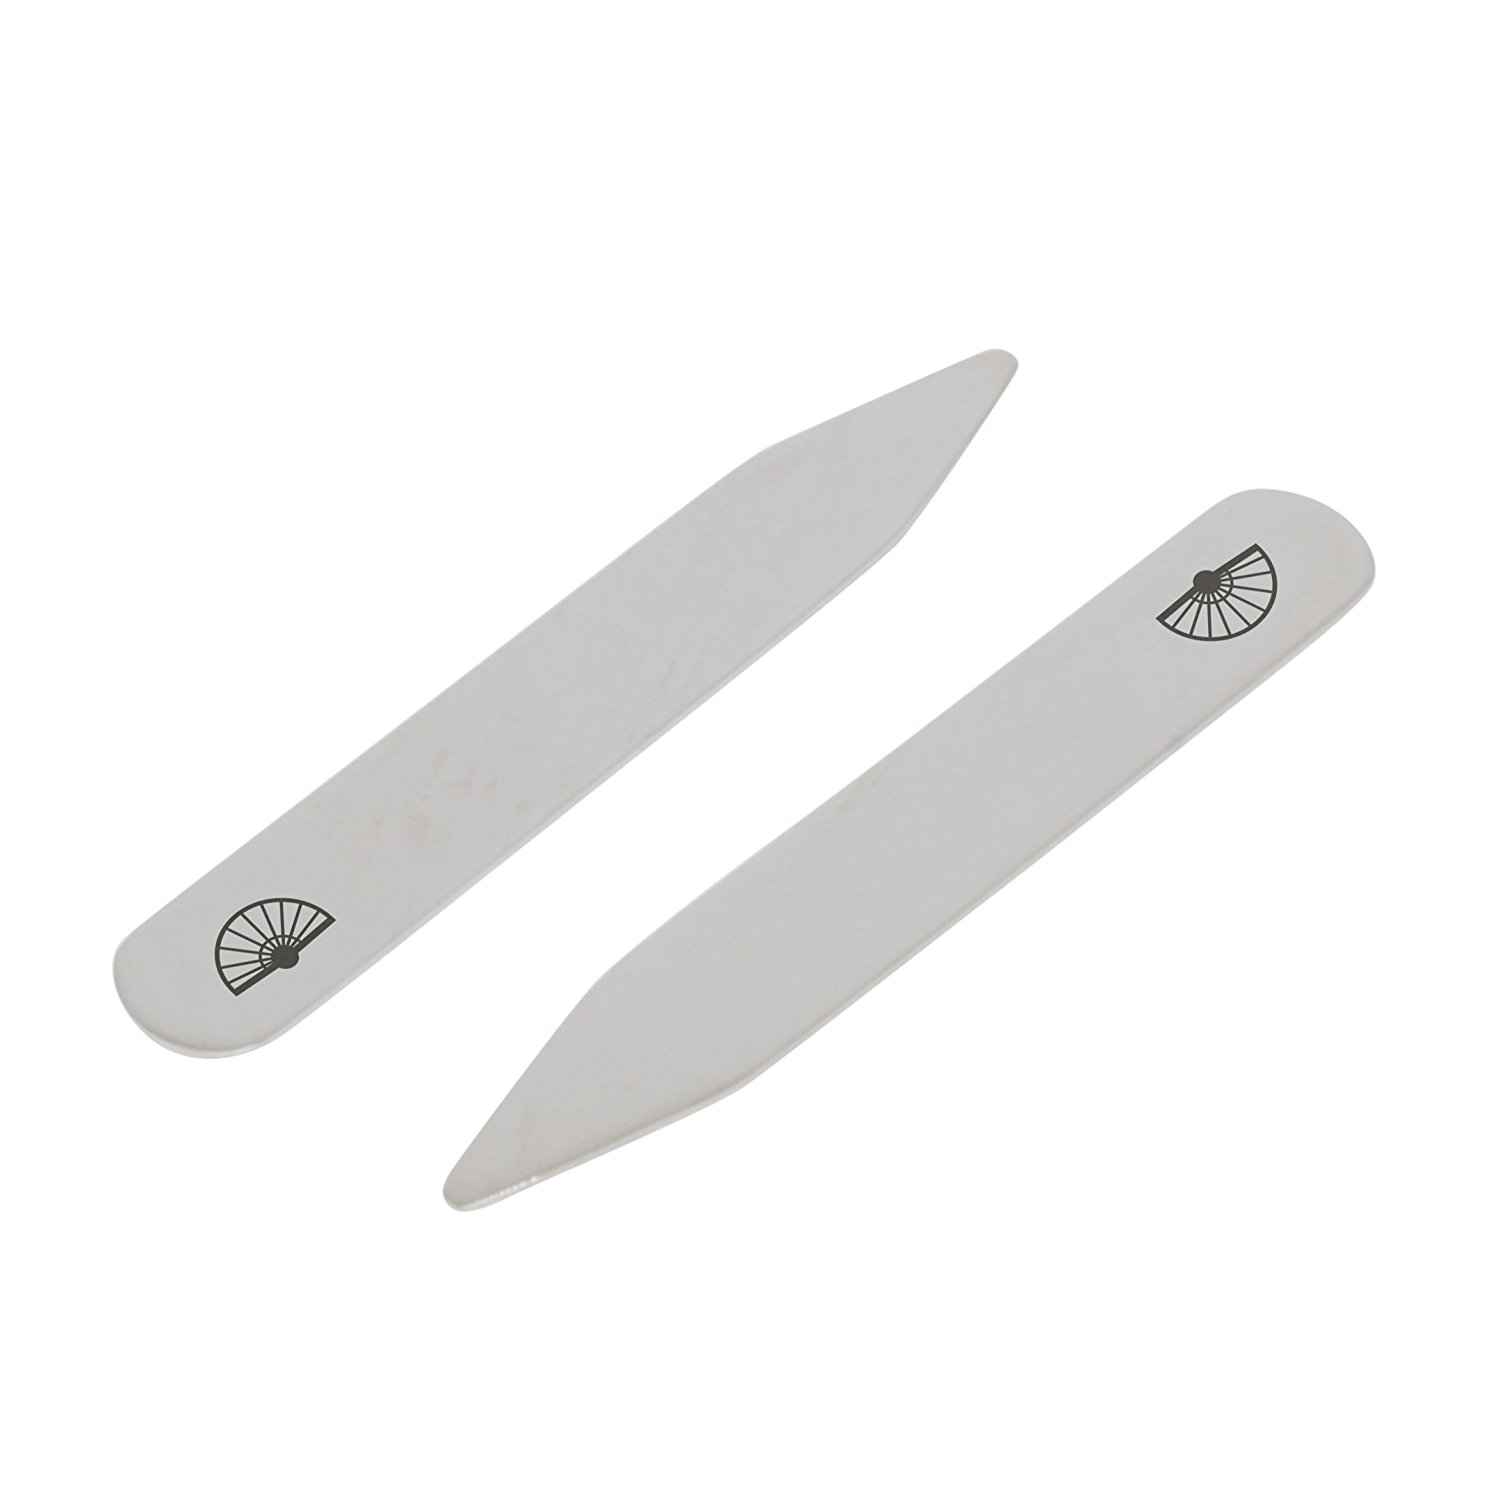 Made In USA MODERN GOODS SHOP Stainless Steel Collar Stays With Laser Engraved Mountain Design 2.5 Inch Metal Collar Stiffeners